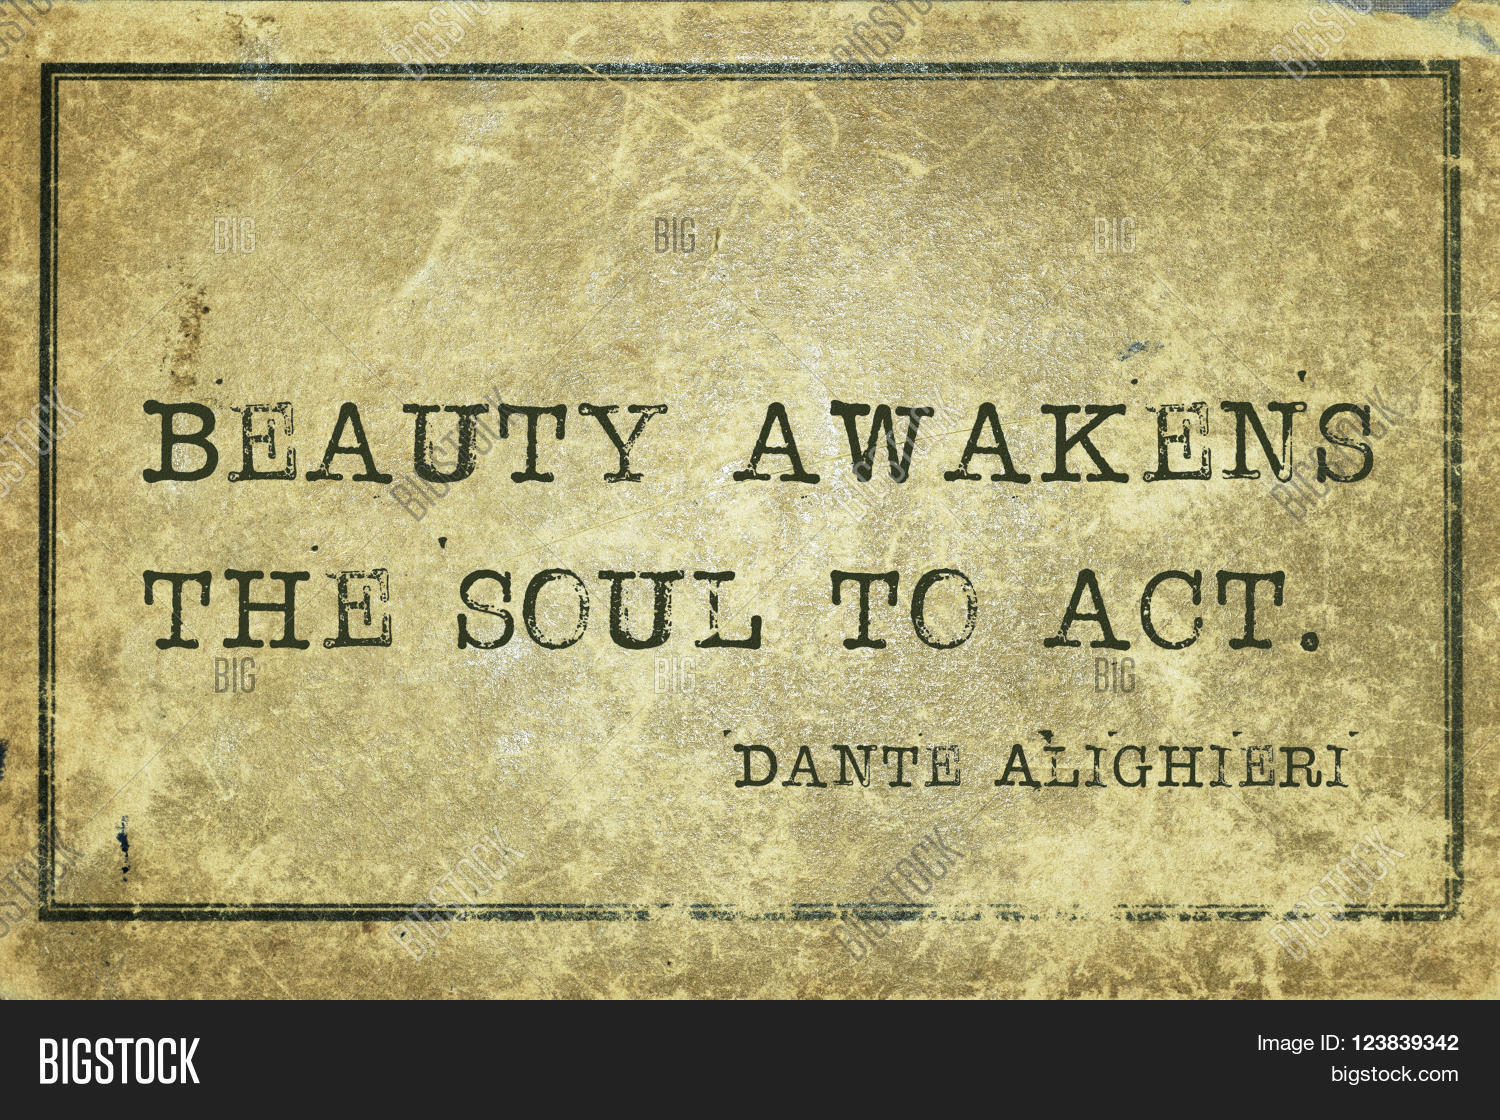 Dante Quotes Beauty Awakens Soul Act  Ancient Image & Photo  Bigstock